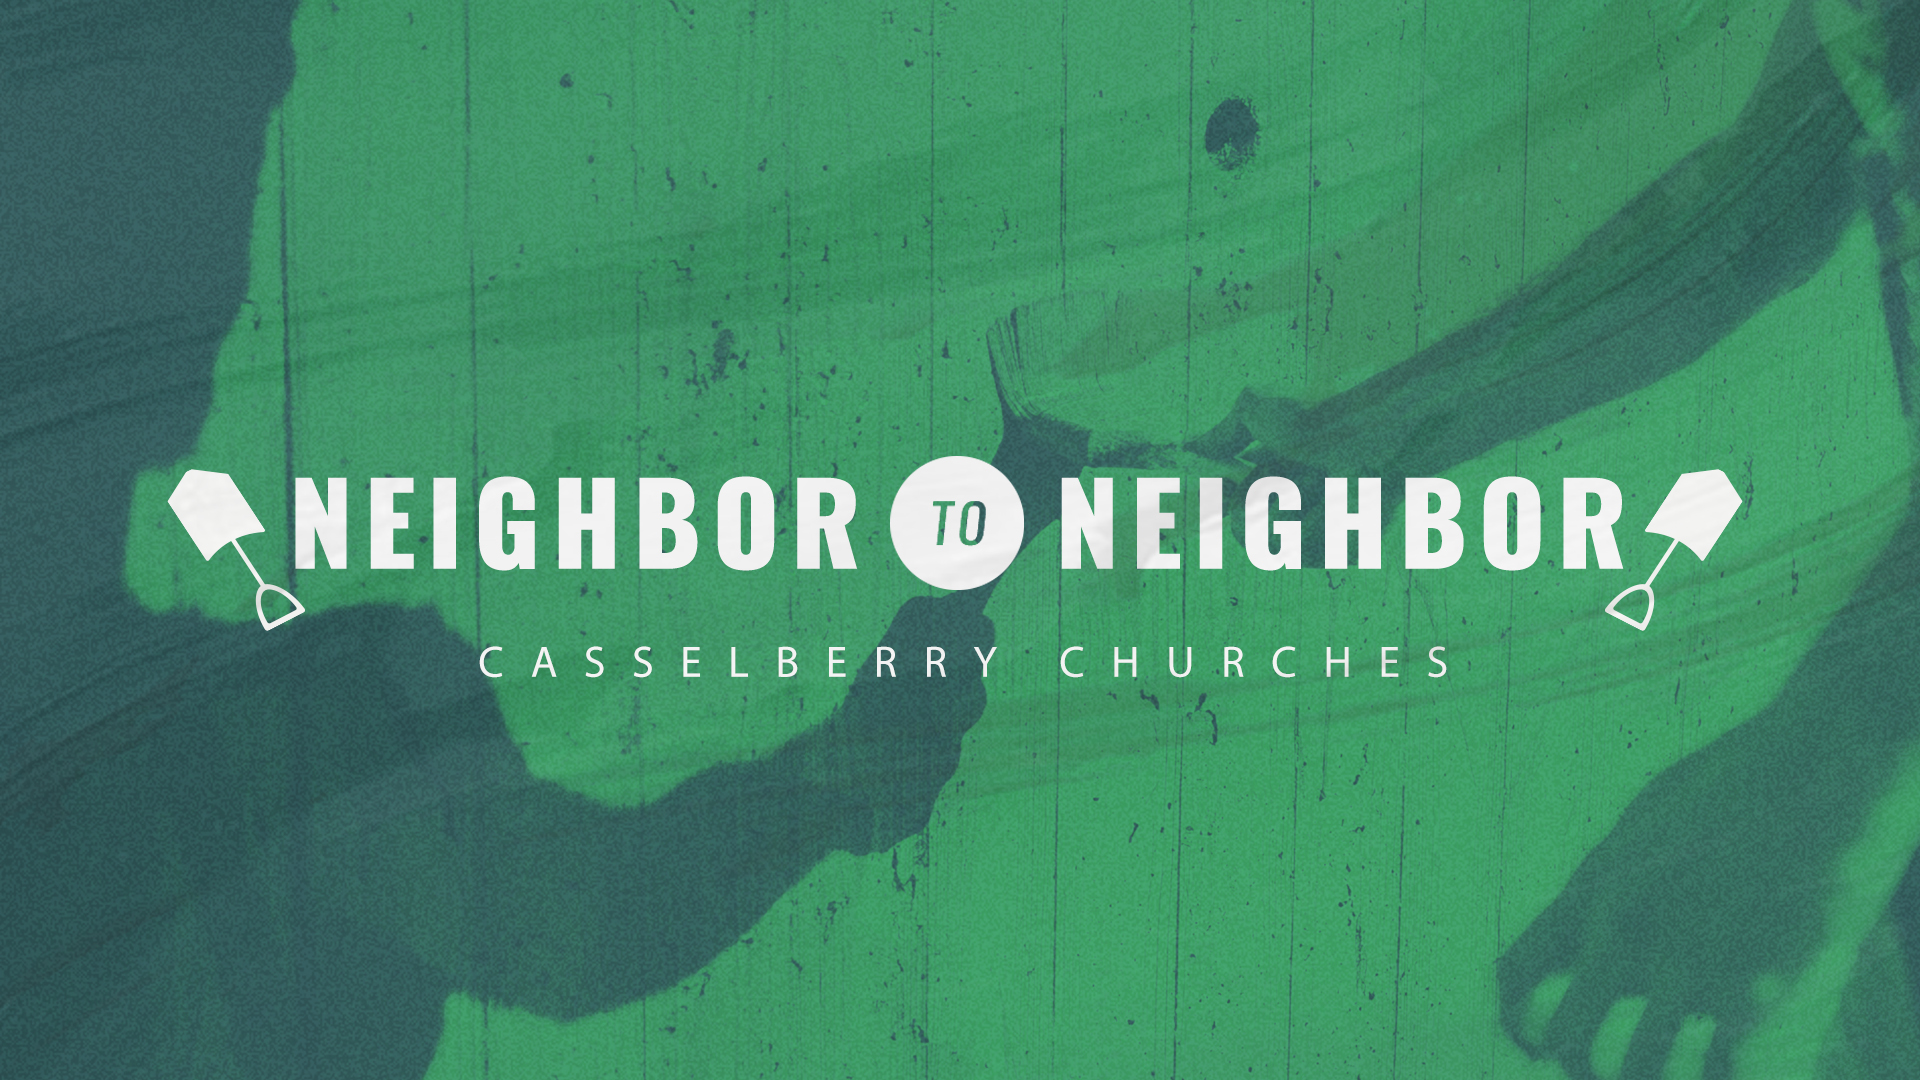 Neighbor to neighbor Casselberry (3) image